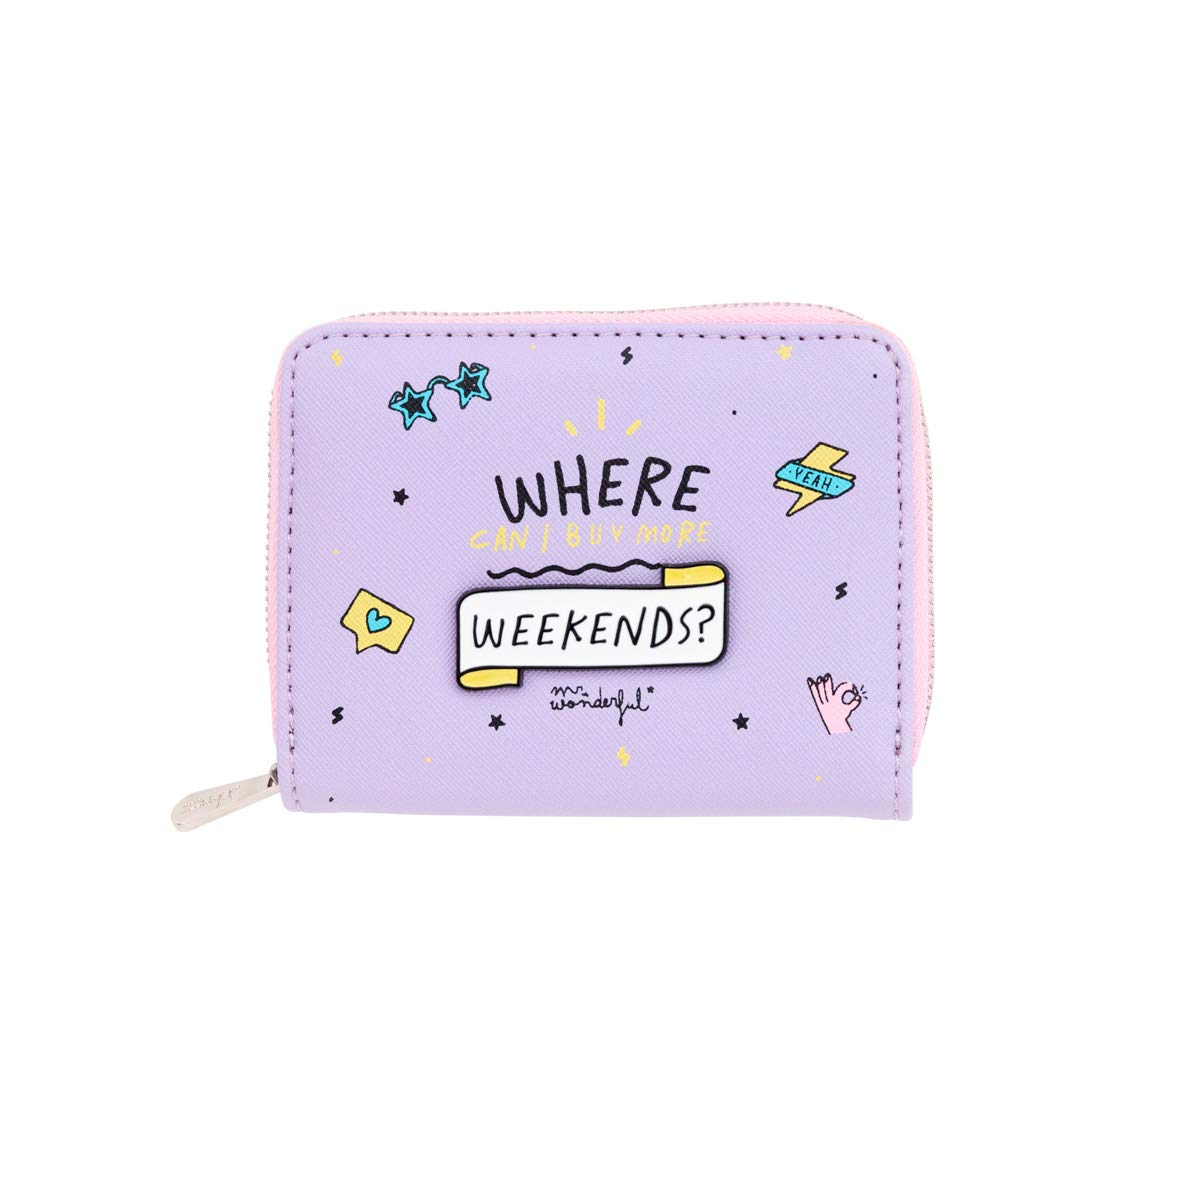 Mr. Wonderful Purse-Where Can I Buy More Weekends, Multicolor, Talla única